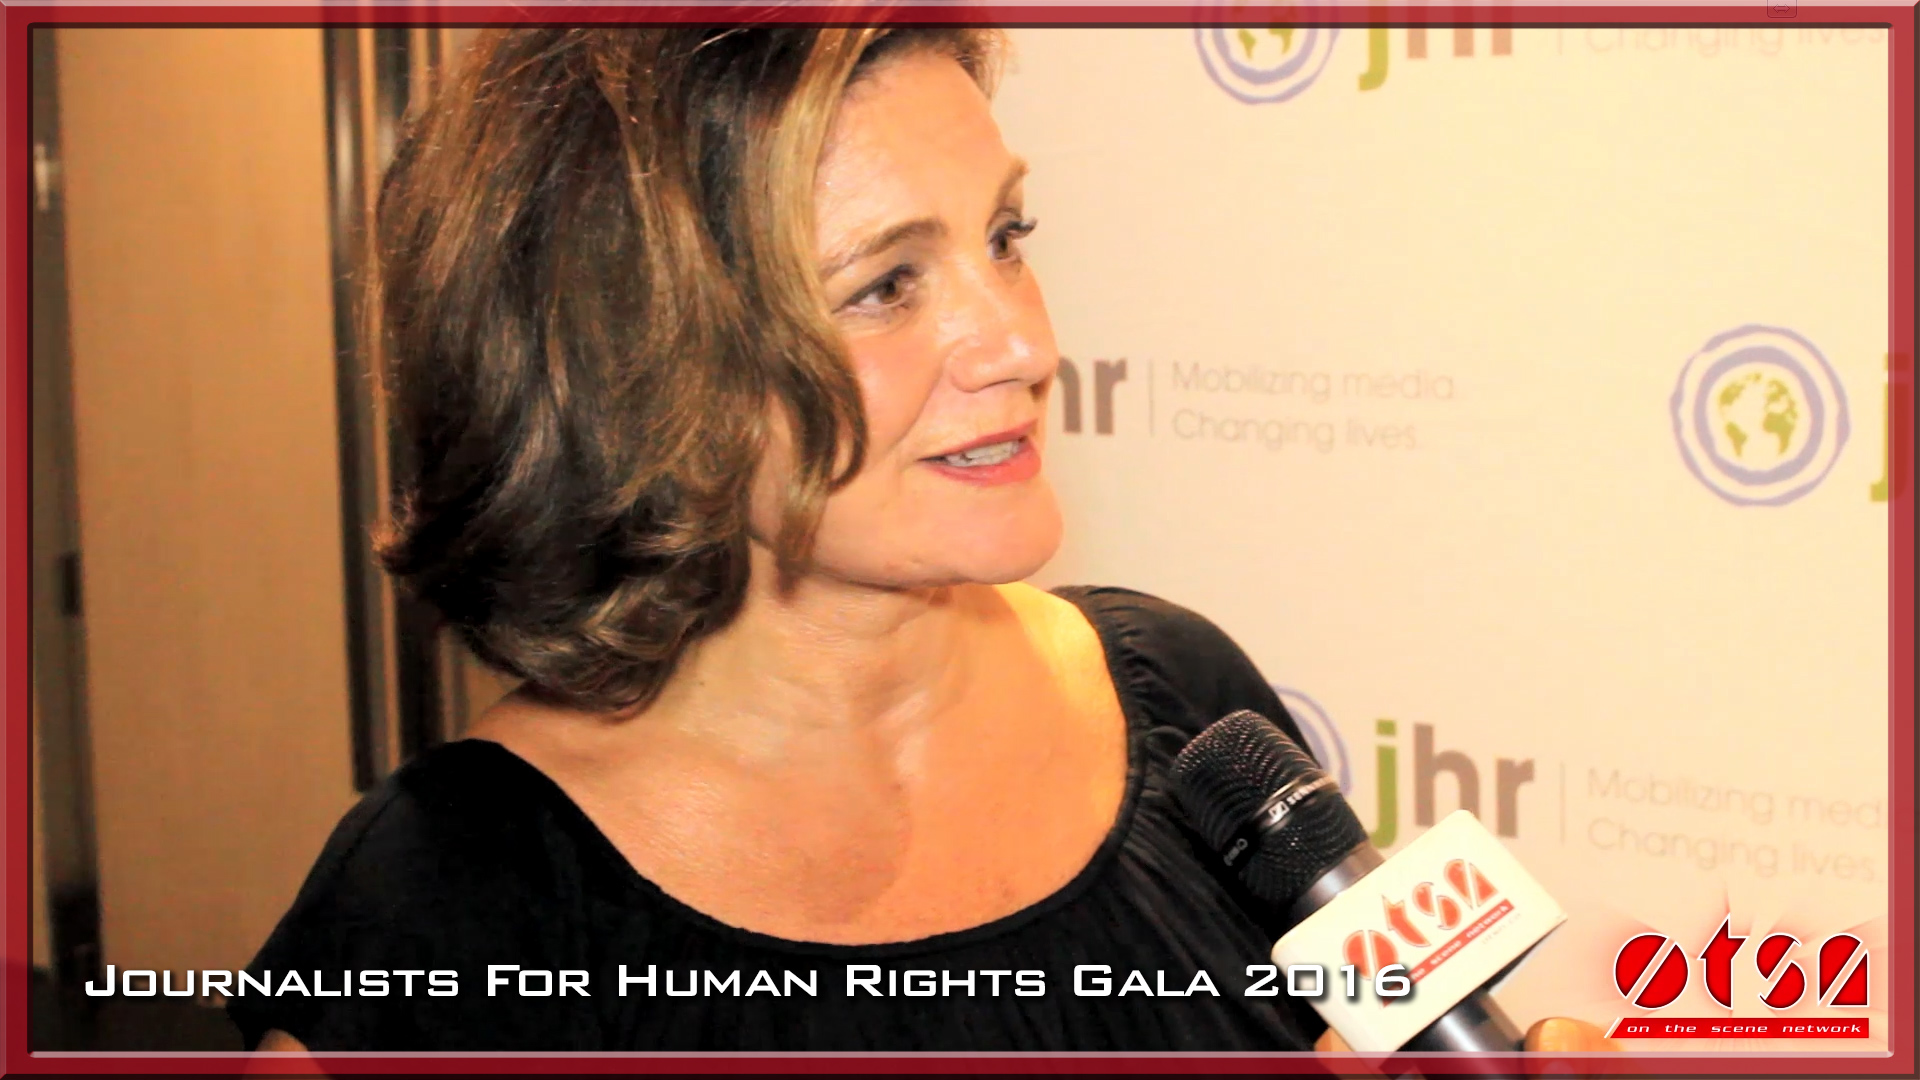 Night for Rights Gala 2016 in support of JHR